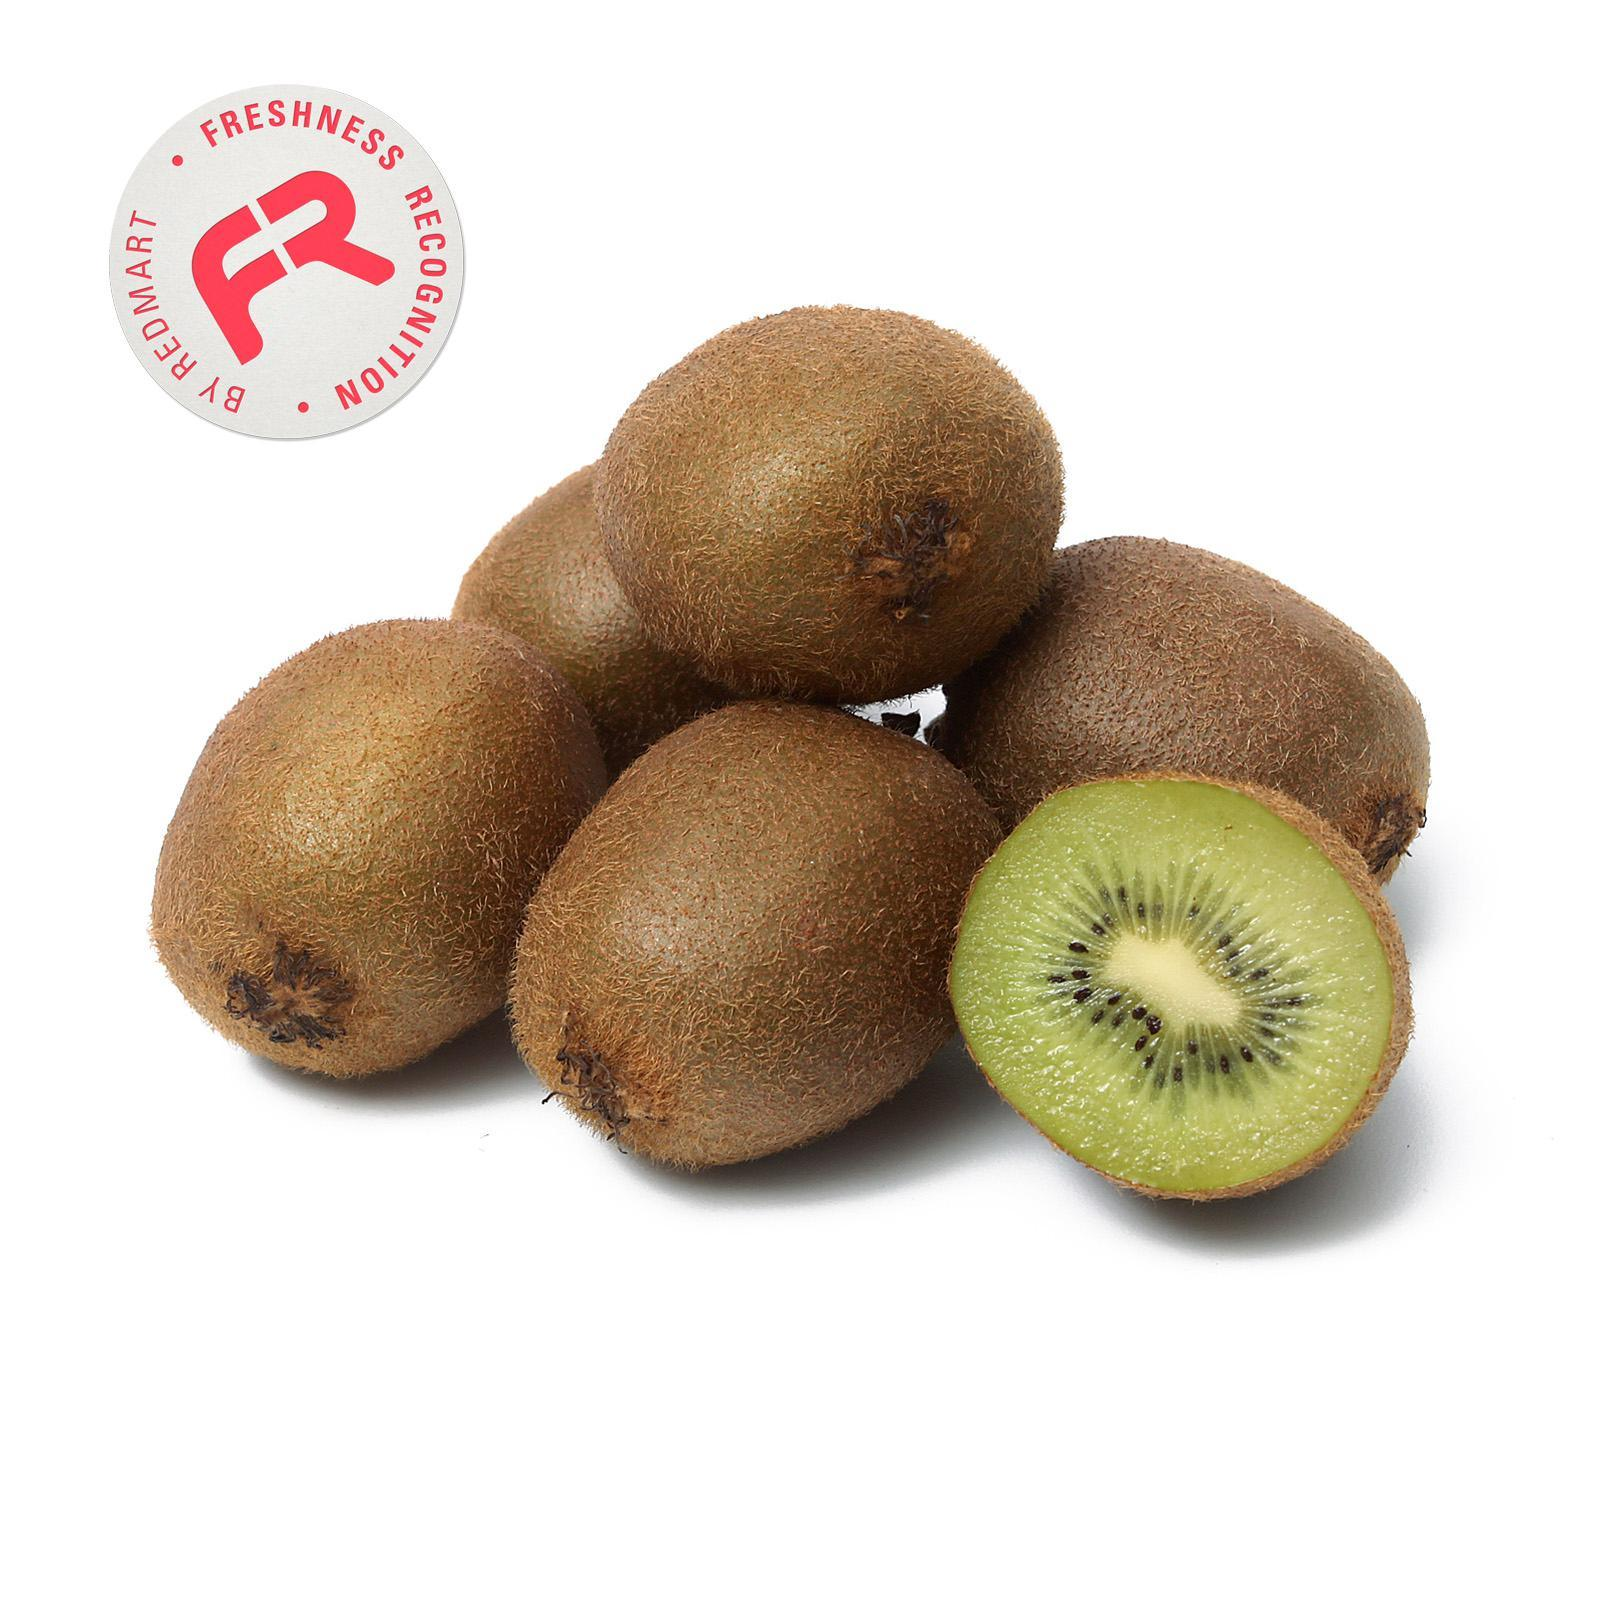 Green Kiwi Fruit By Redmart.